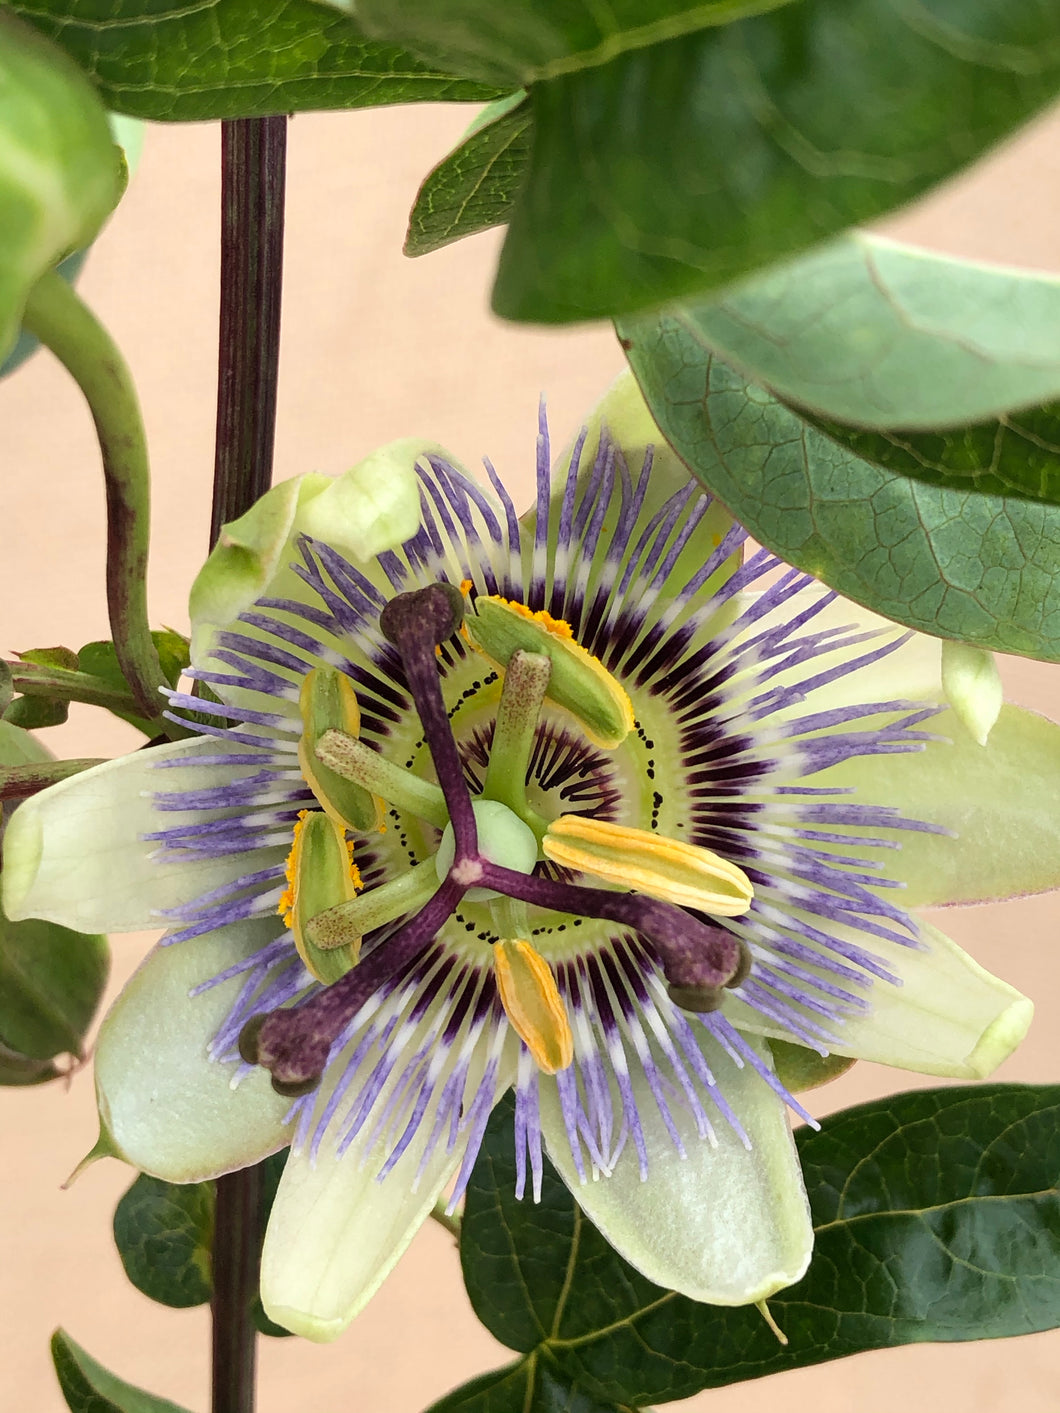 Staked/Vines - Passiflora caerulea 'Blue Passionflower' (1 Gallon)